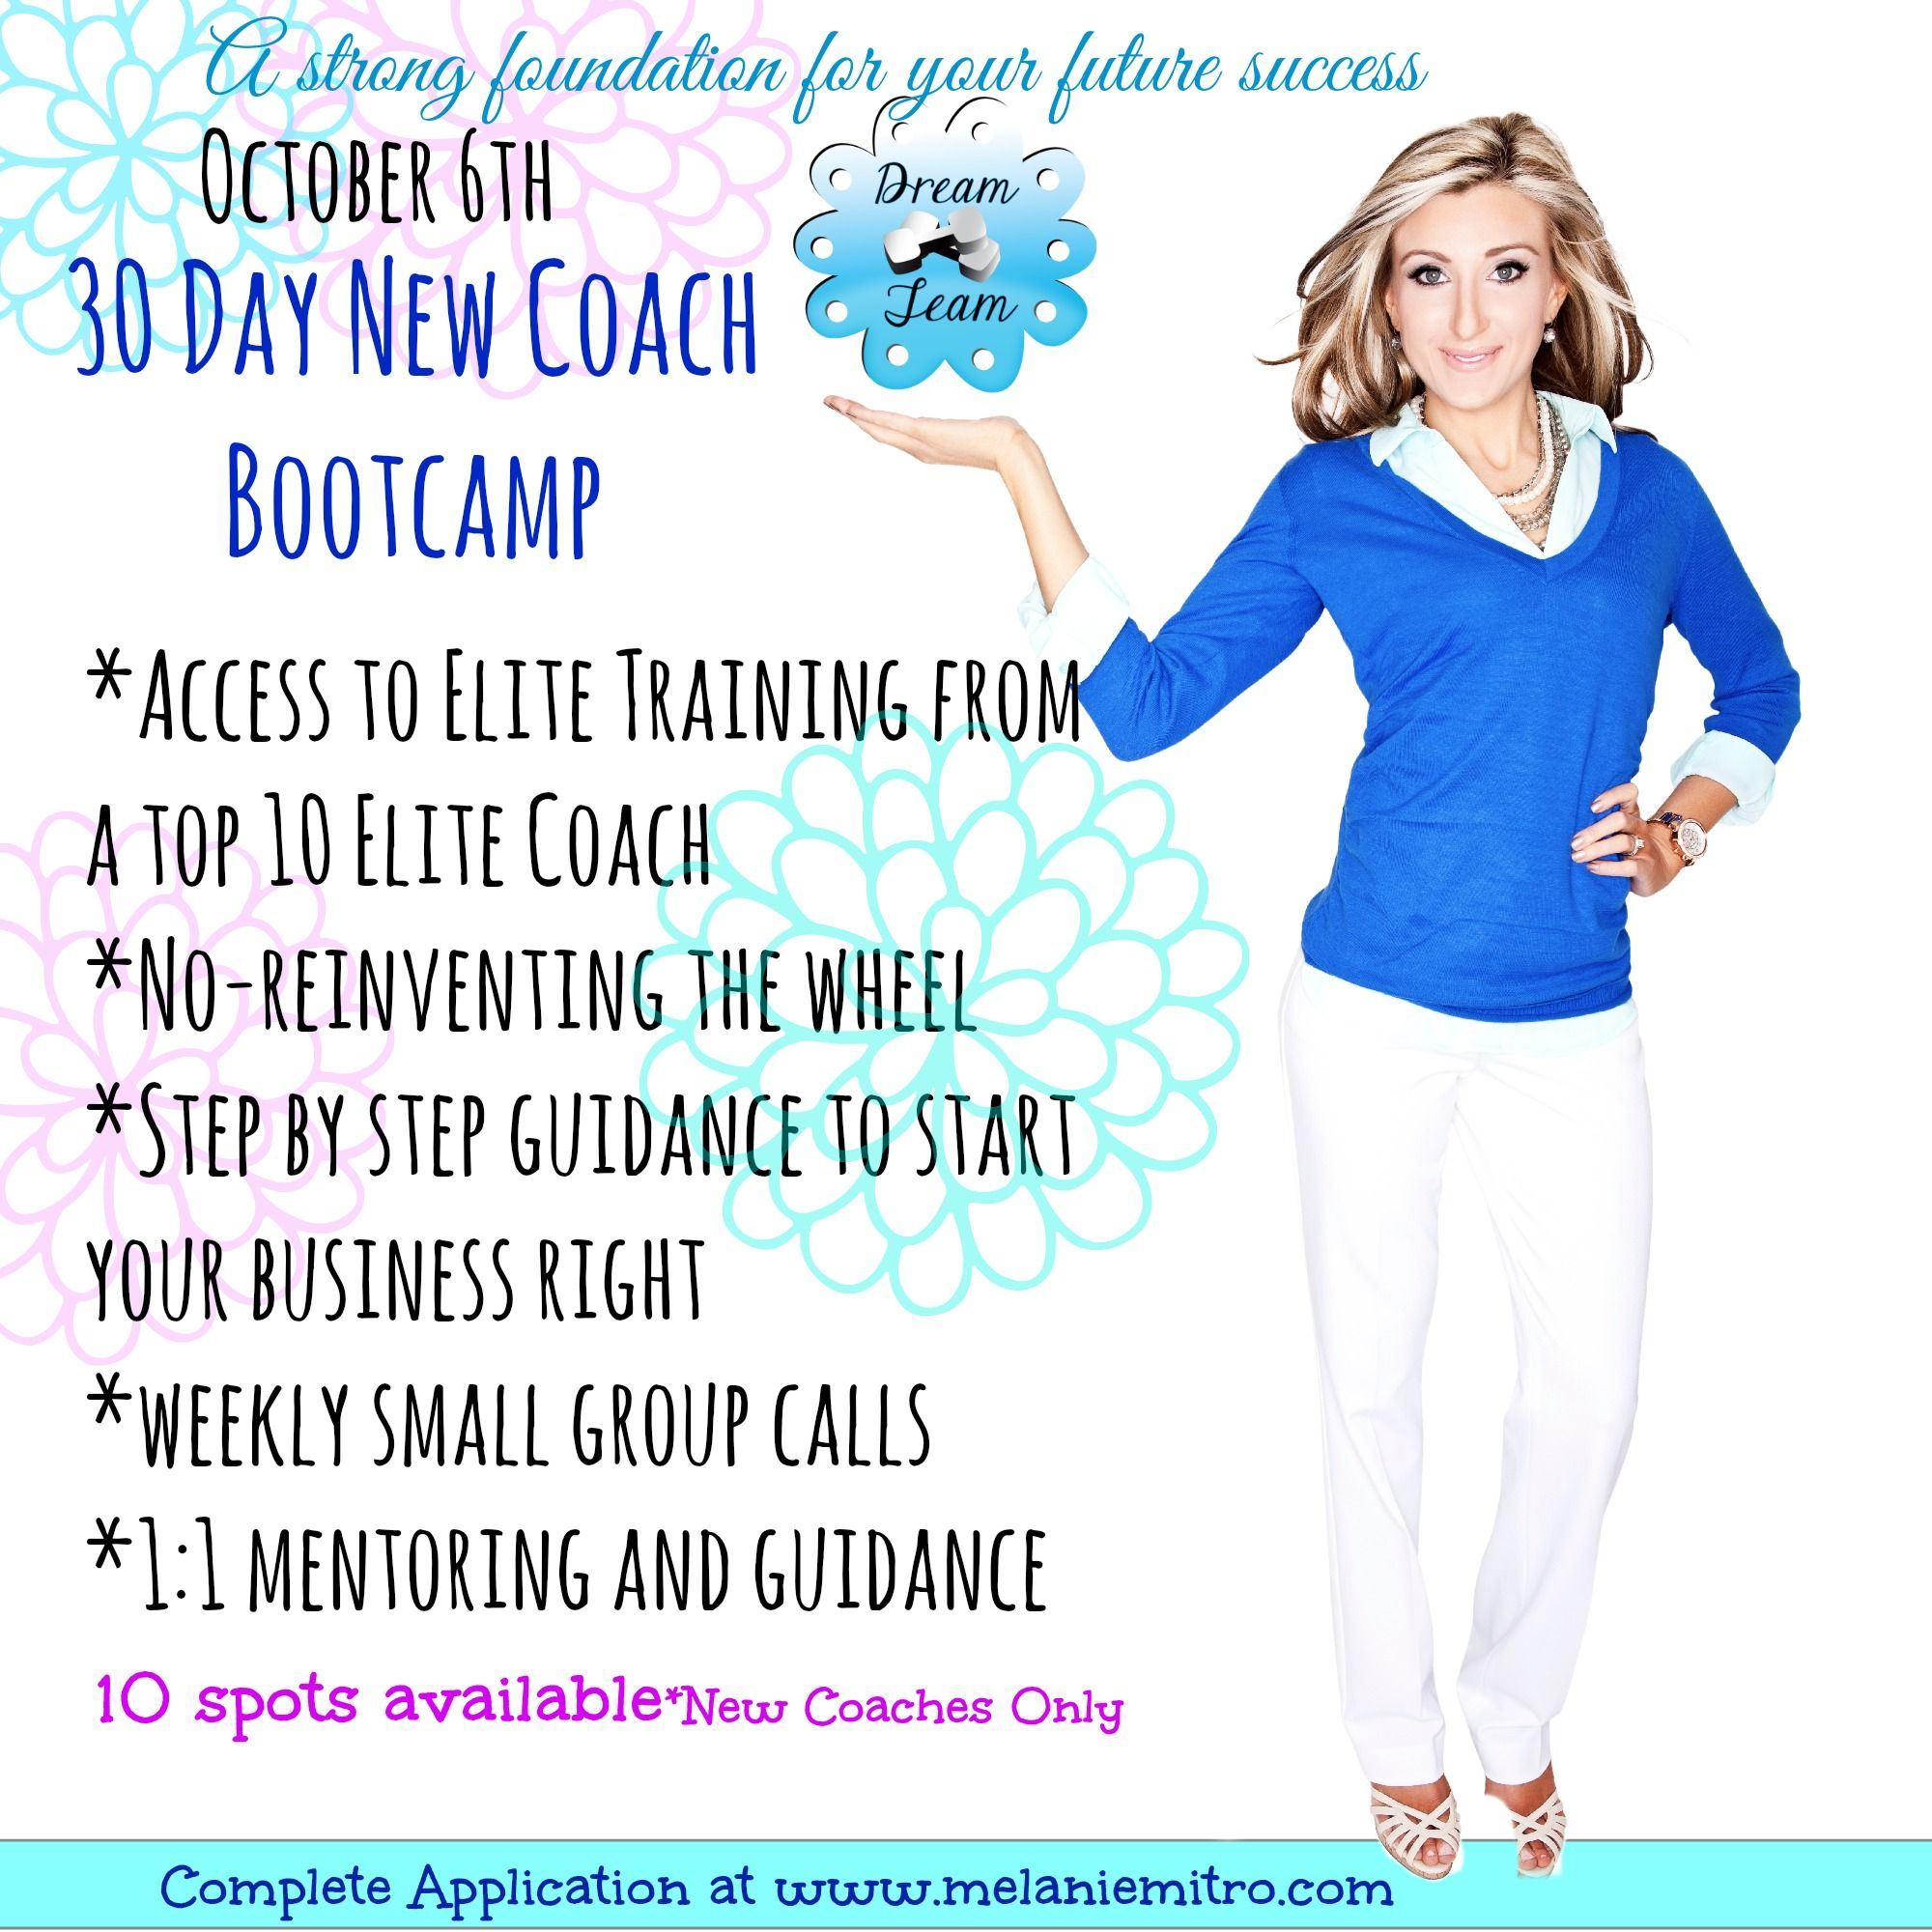 30 day accelerated new coach bootcamp by a top coach in team